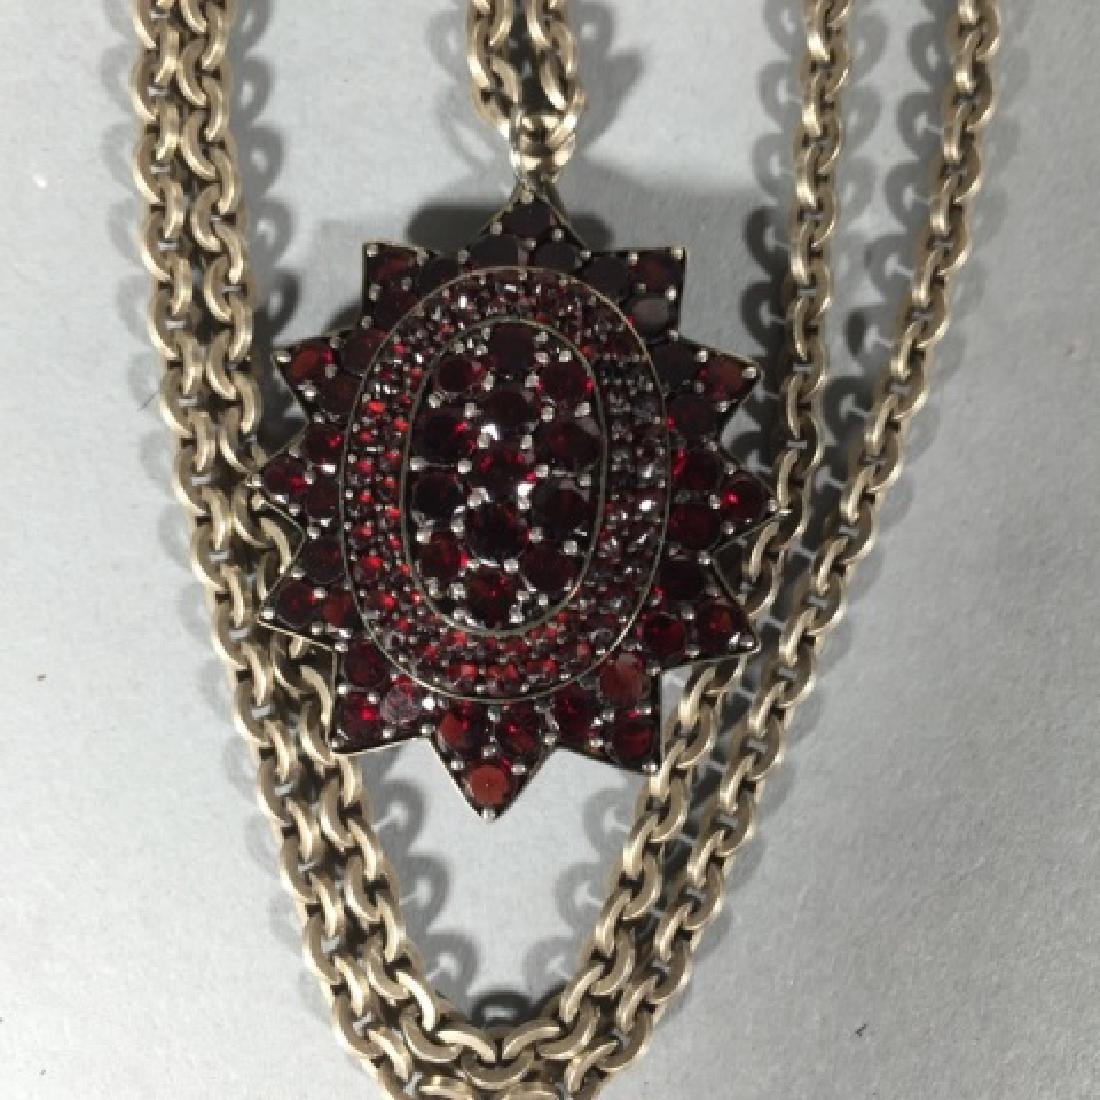 Large Antique 19th C Garnet Star Necklace Pendant - 5